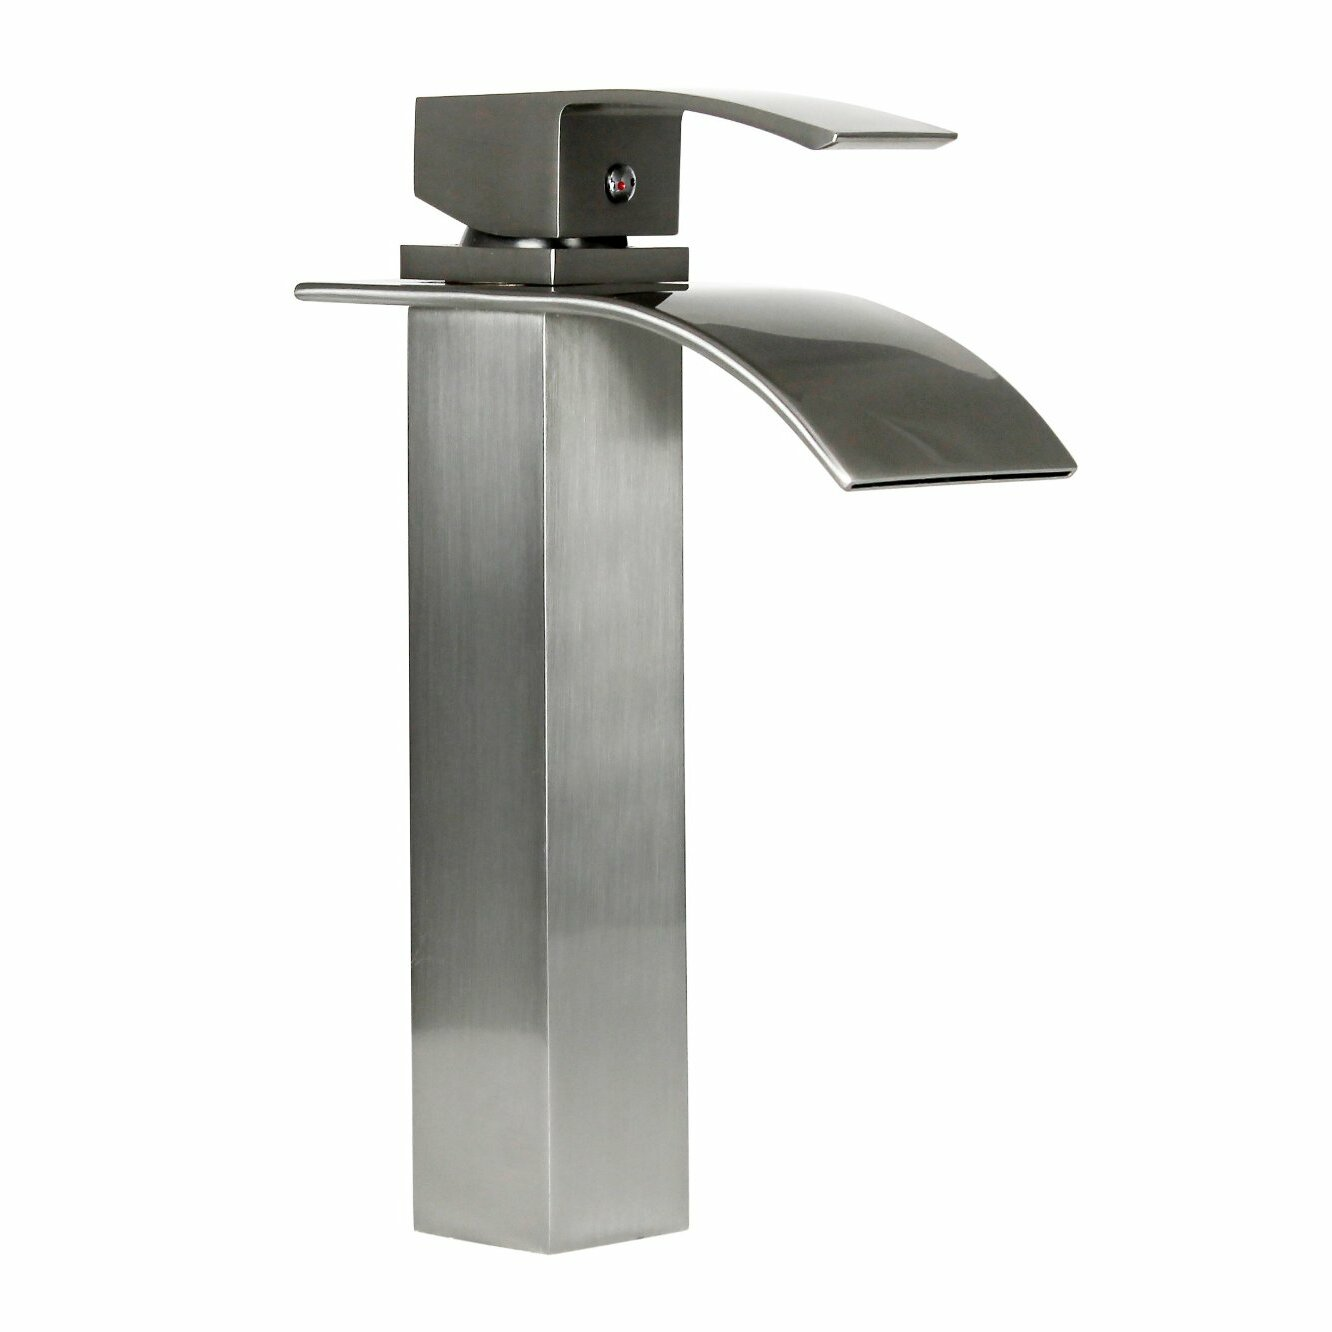 Dyconn Faucet Wye Modern Bathroom Vessel Sink Bathroom Faucet - Designer bathroom faucets